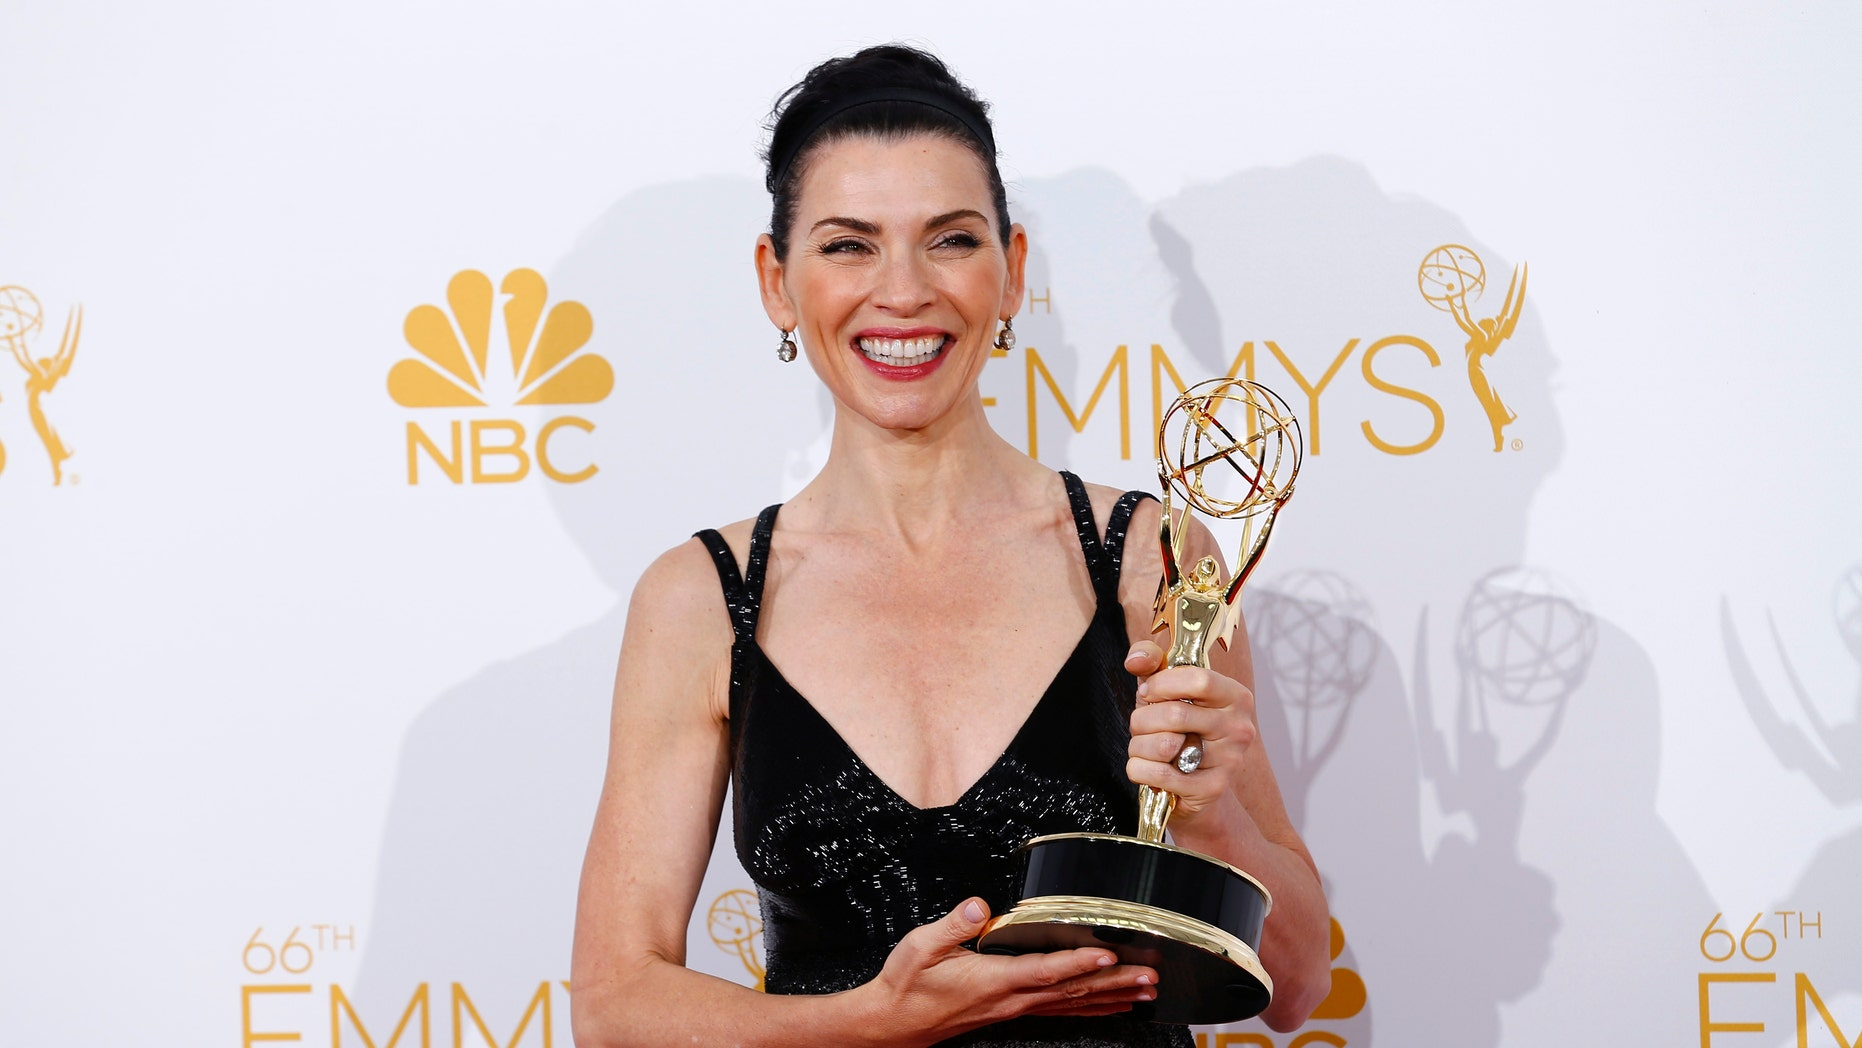 """Julianna Margulies poses backstage with her award for Outstanding Lead Actress in a Drama Series for the CBS series """"The Good Wife"""" at the 66th Primetime Emmy Awards in Los Angeles, California August 25, 2014.  REUTERS/Mike Blake (UNITED STATES -Tags: ENTERTAINMENT)(EMMYS-BACKSTAGE) - RTR43QQV"""